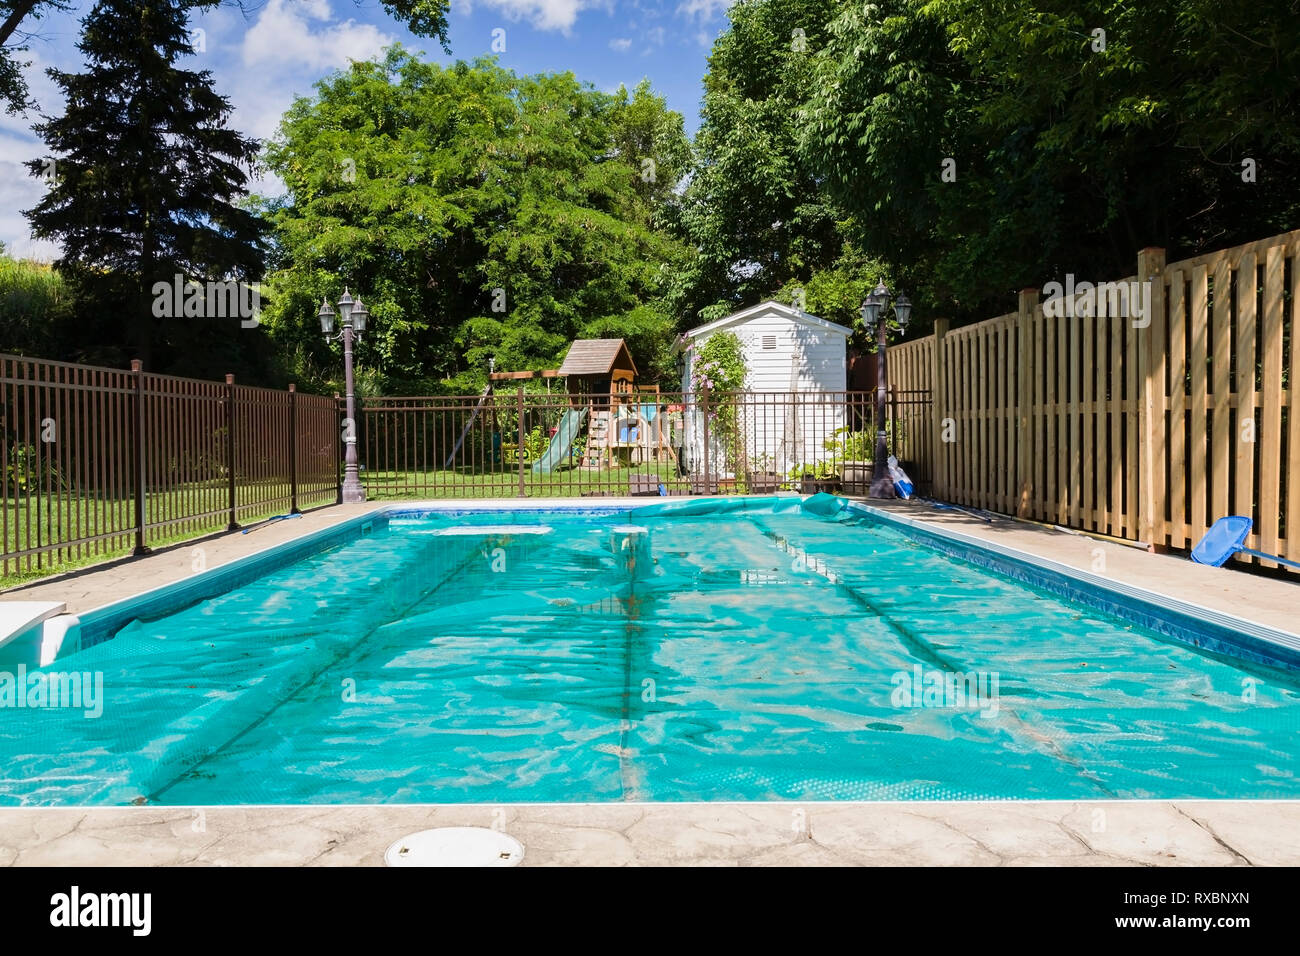 In-ground rectangular swimming pool with protective green ...